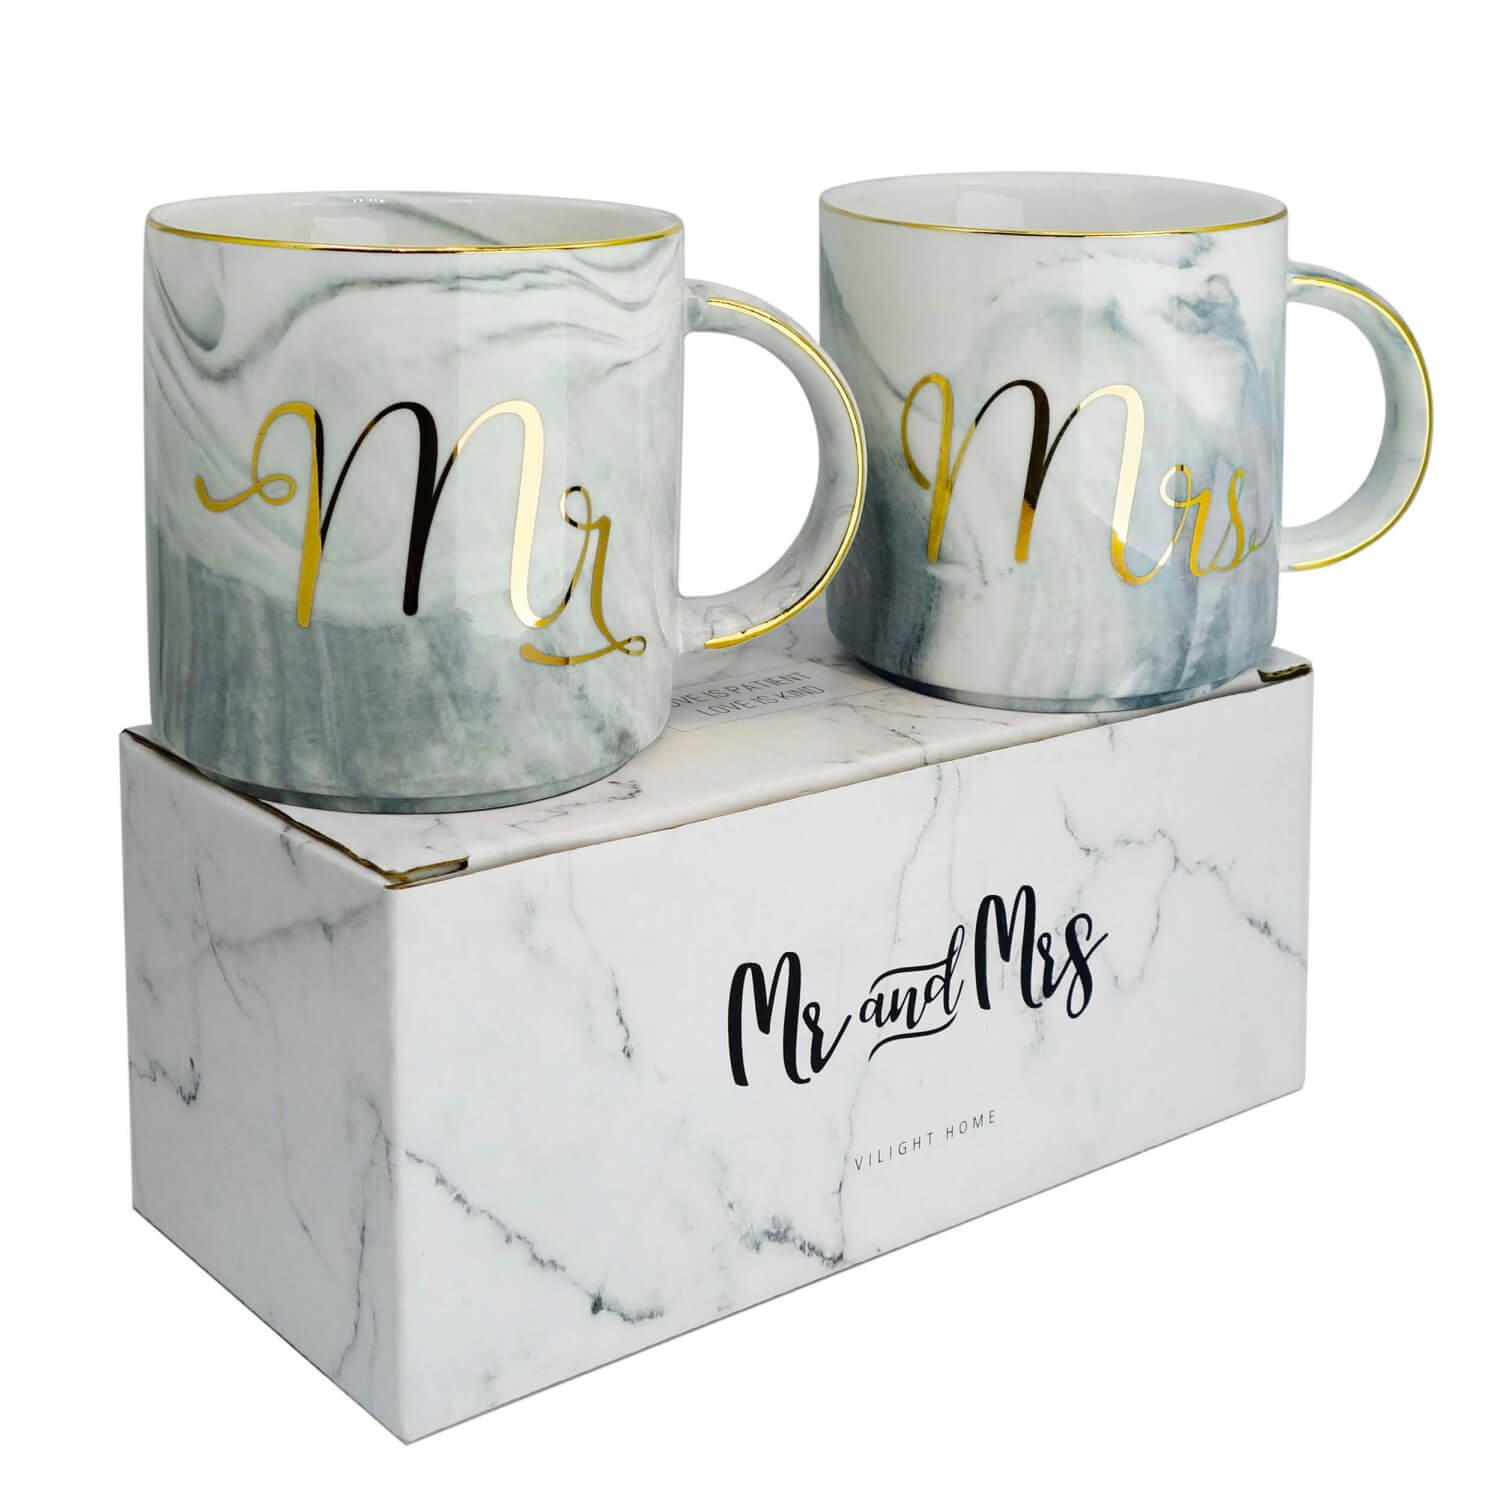 Vilight Engagement Wedding and Bridal Shower Couple Gifts - Mr & Mrs EST 2018 Coffee Cups - Ceramic Marble Tumbler 11.5 oz CPCUP-04